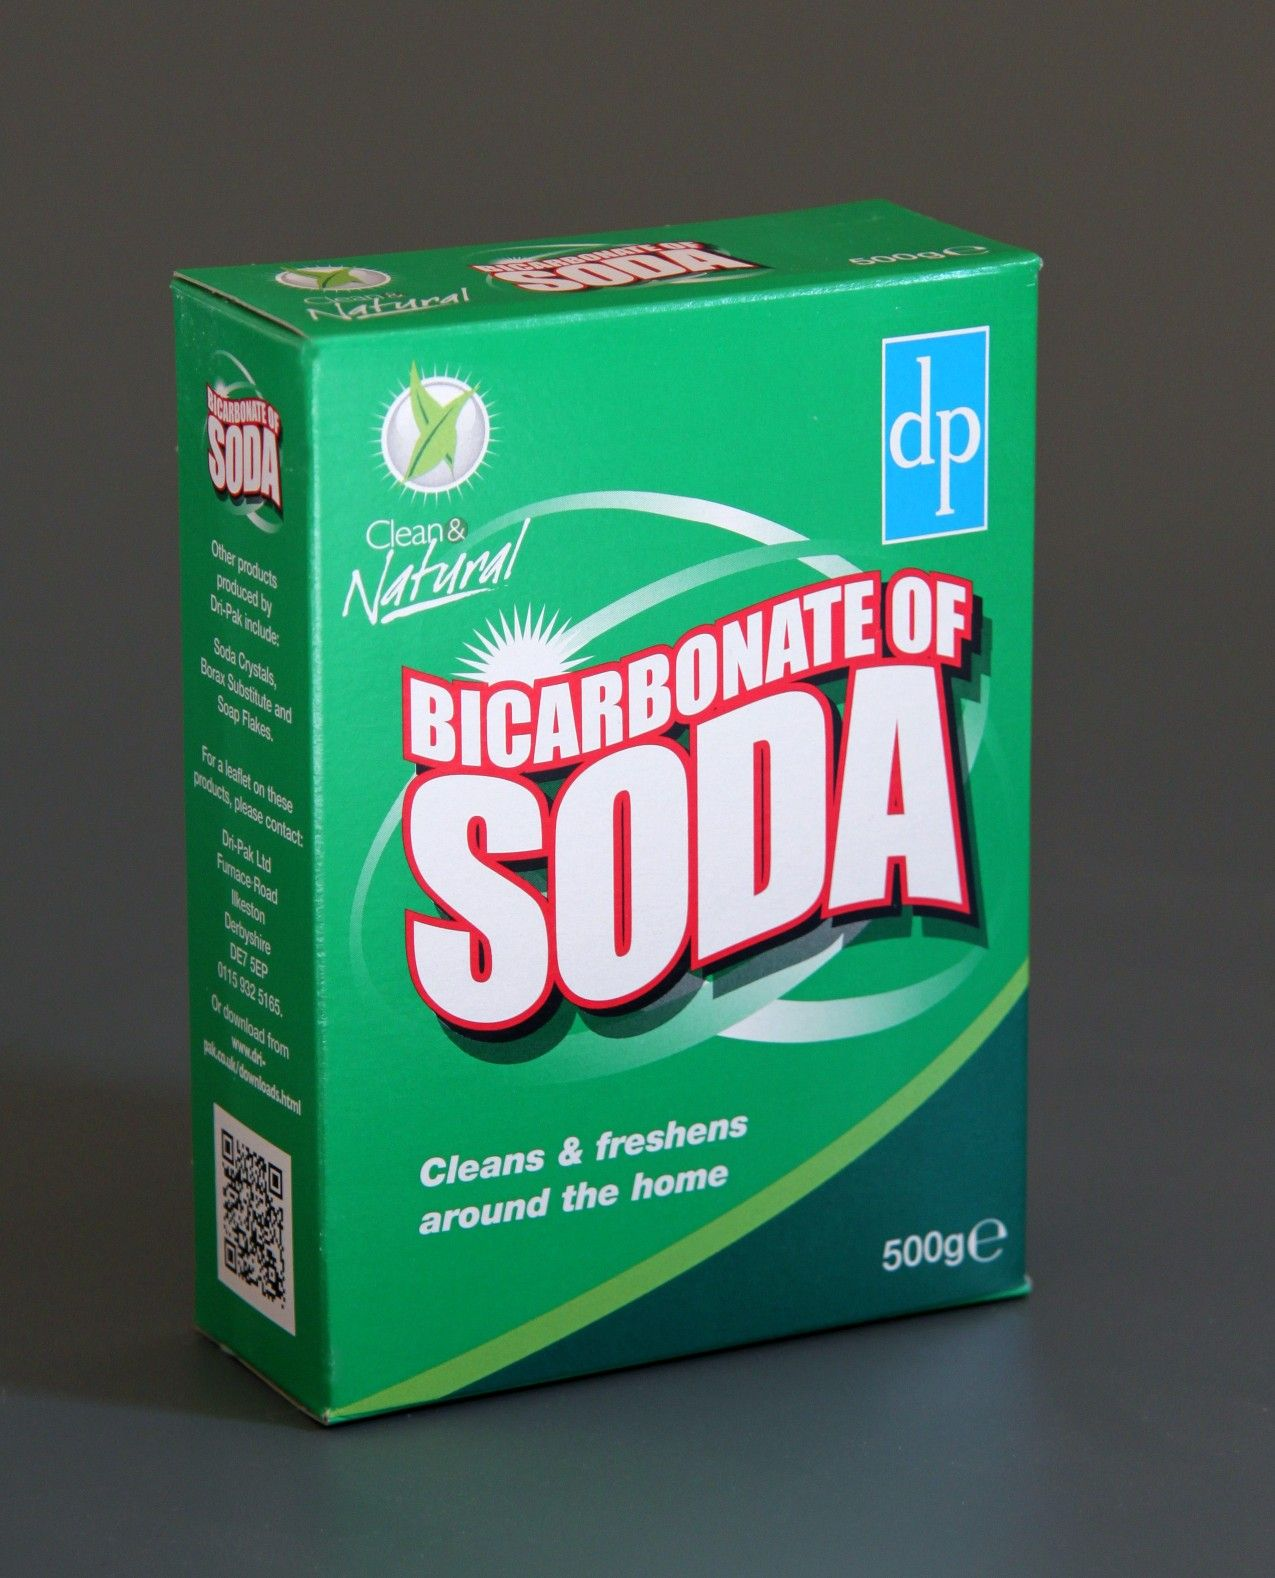 Bakpoeder Tapijt Reinigen What Is Bicarbonate Of Soda And Why Should We Clean With It Www